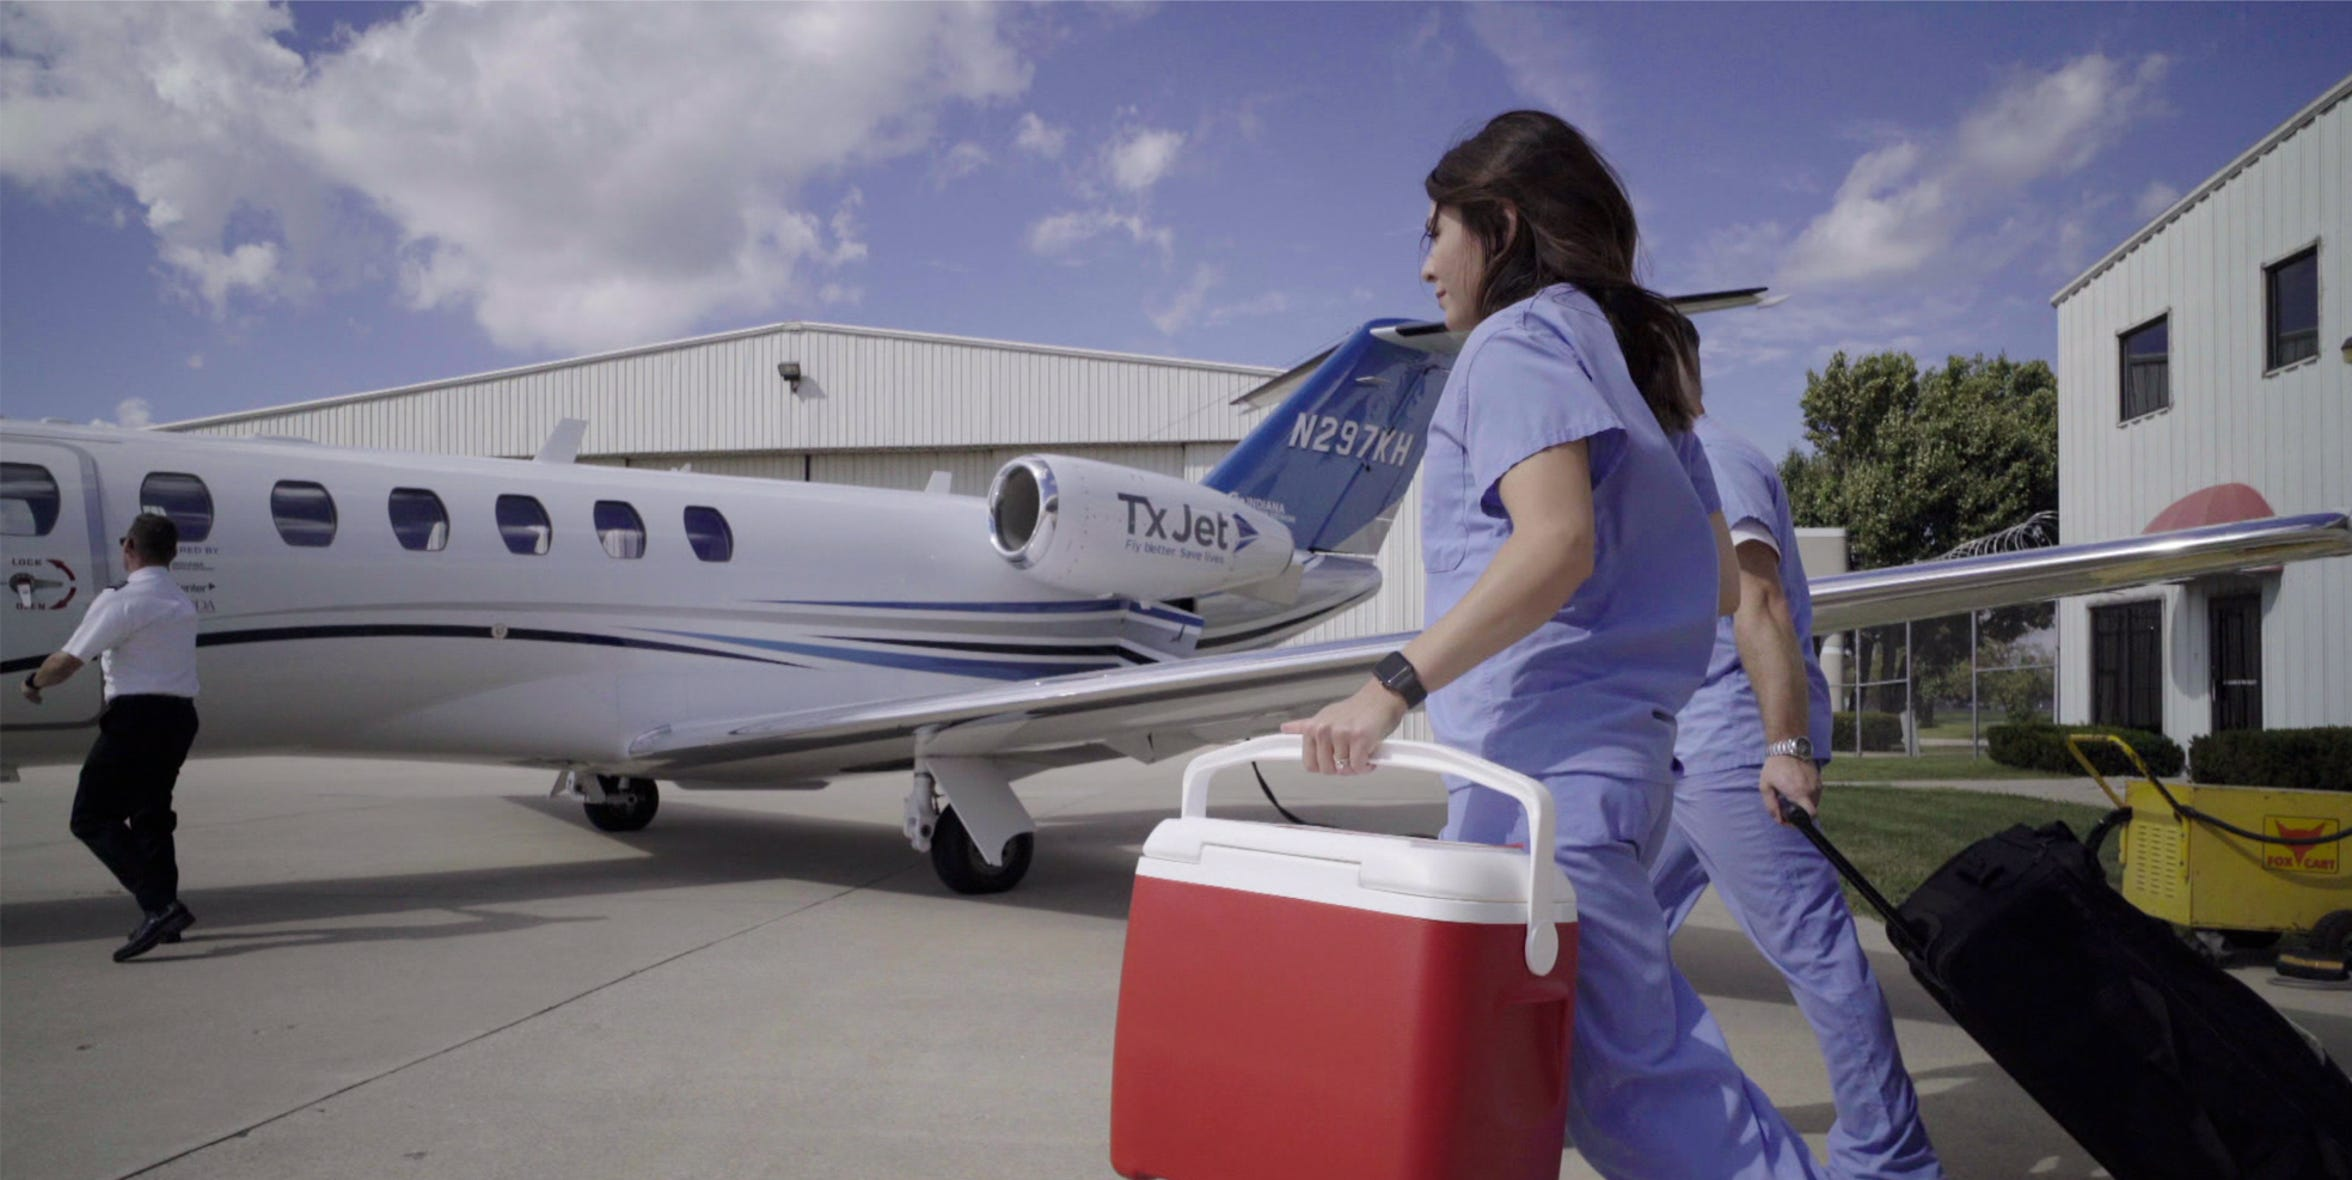 TxJet is the first nationwide provider of organ donation aviation.